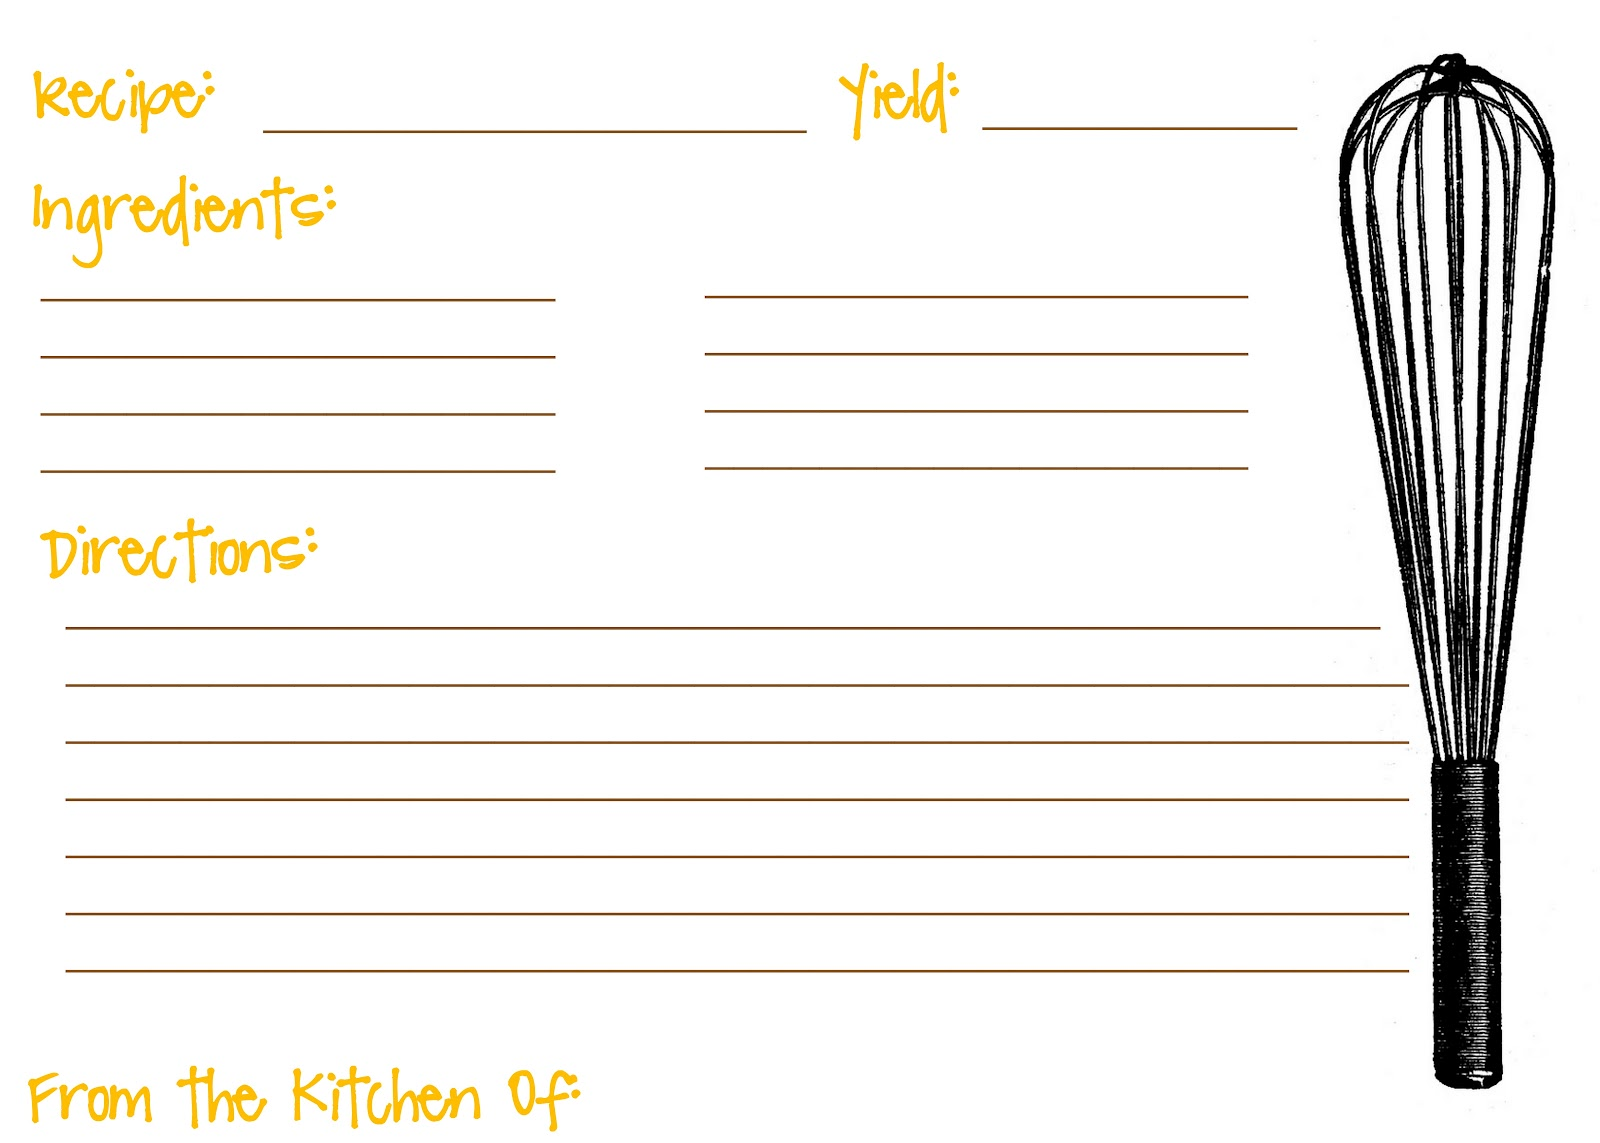 12 Best Images of Printable Recipe Cards With Lines - Free ...